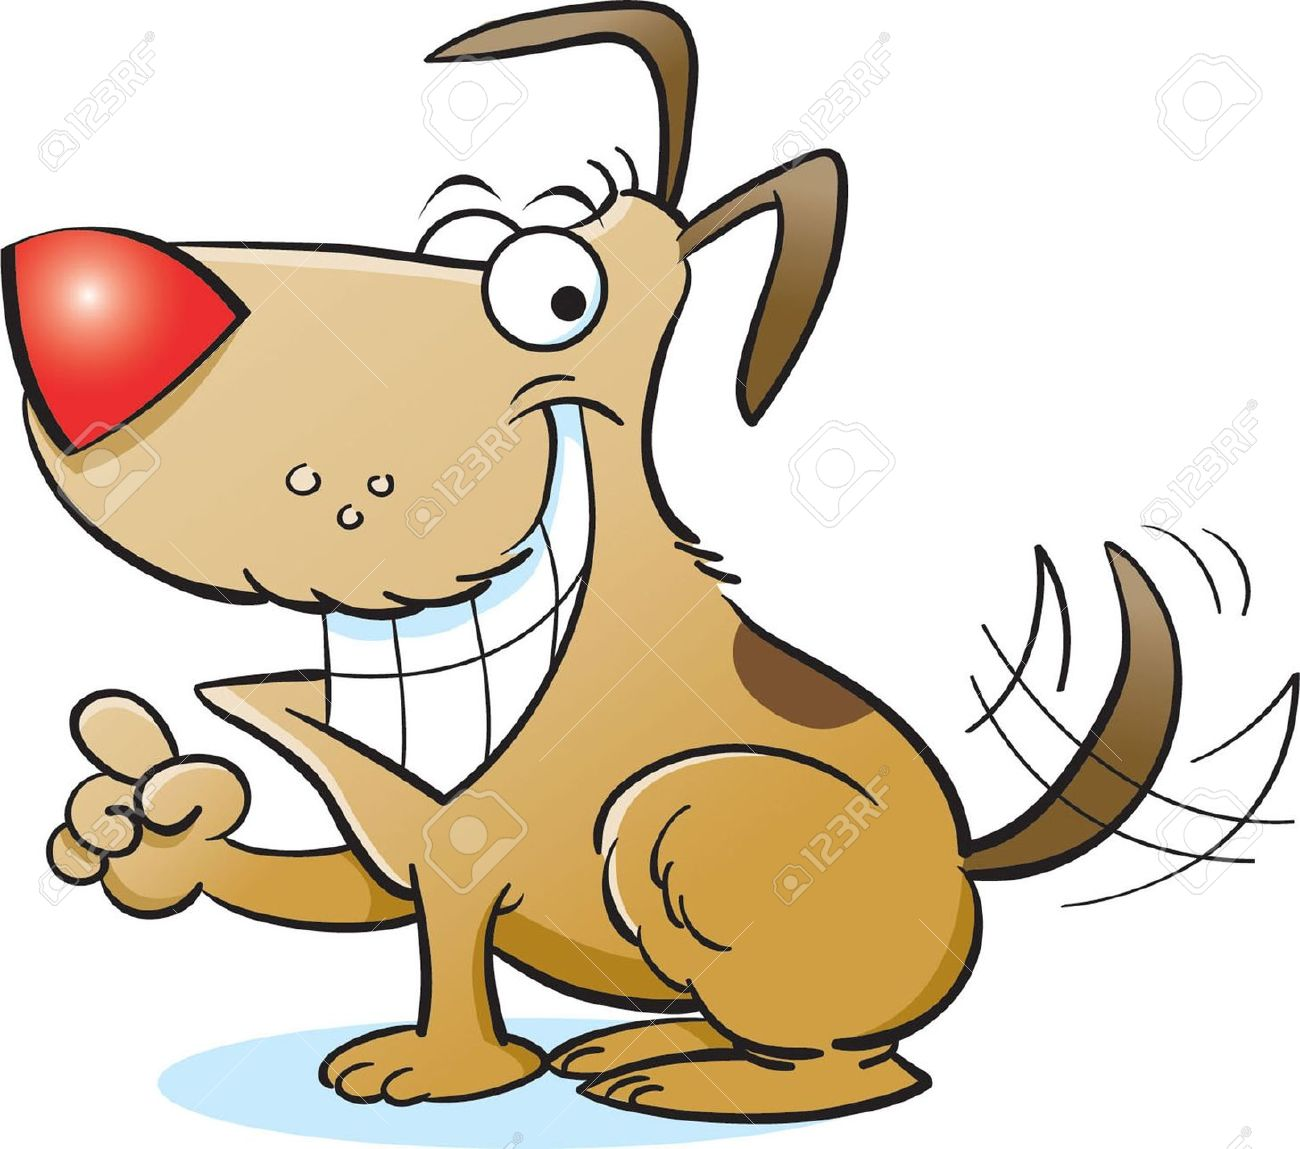 Dog smiling clipart - Clipground - photo#48